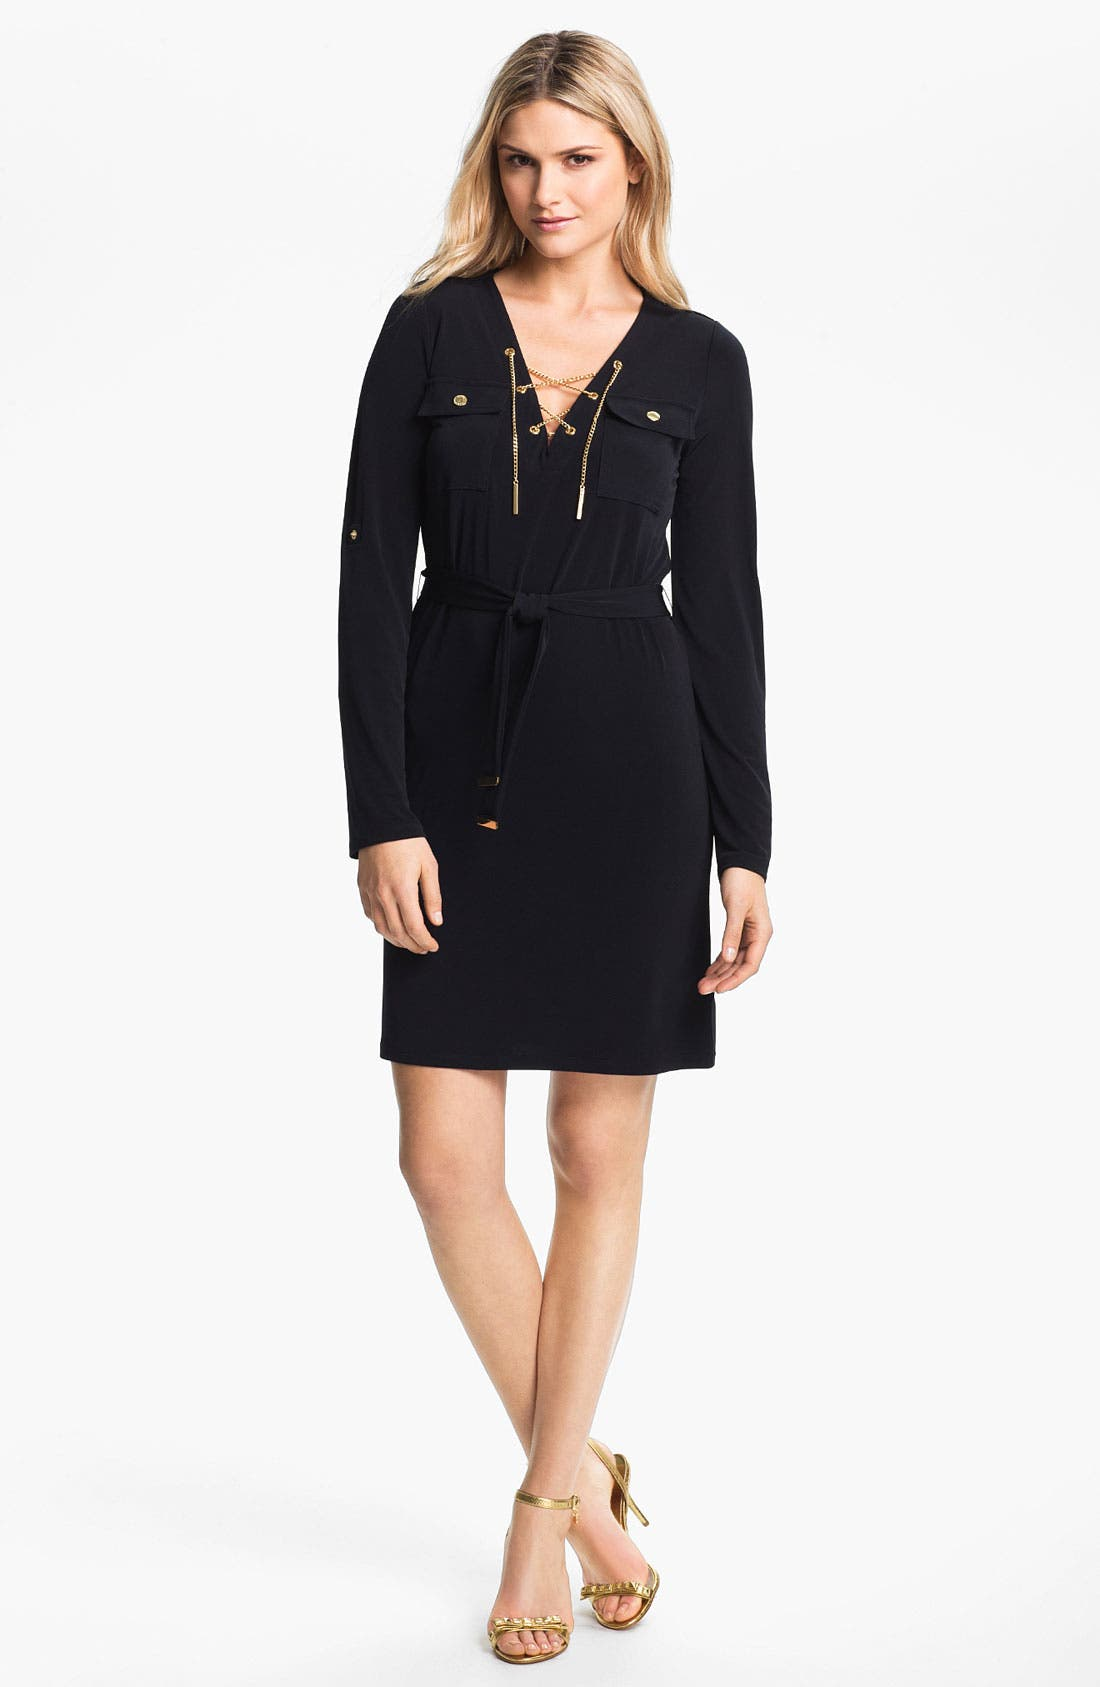 Alternate Image 1 Selected - MICHAEL Michael Kors Chain Lace-Up Jersey Dress (Regular & Petite)